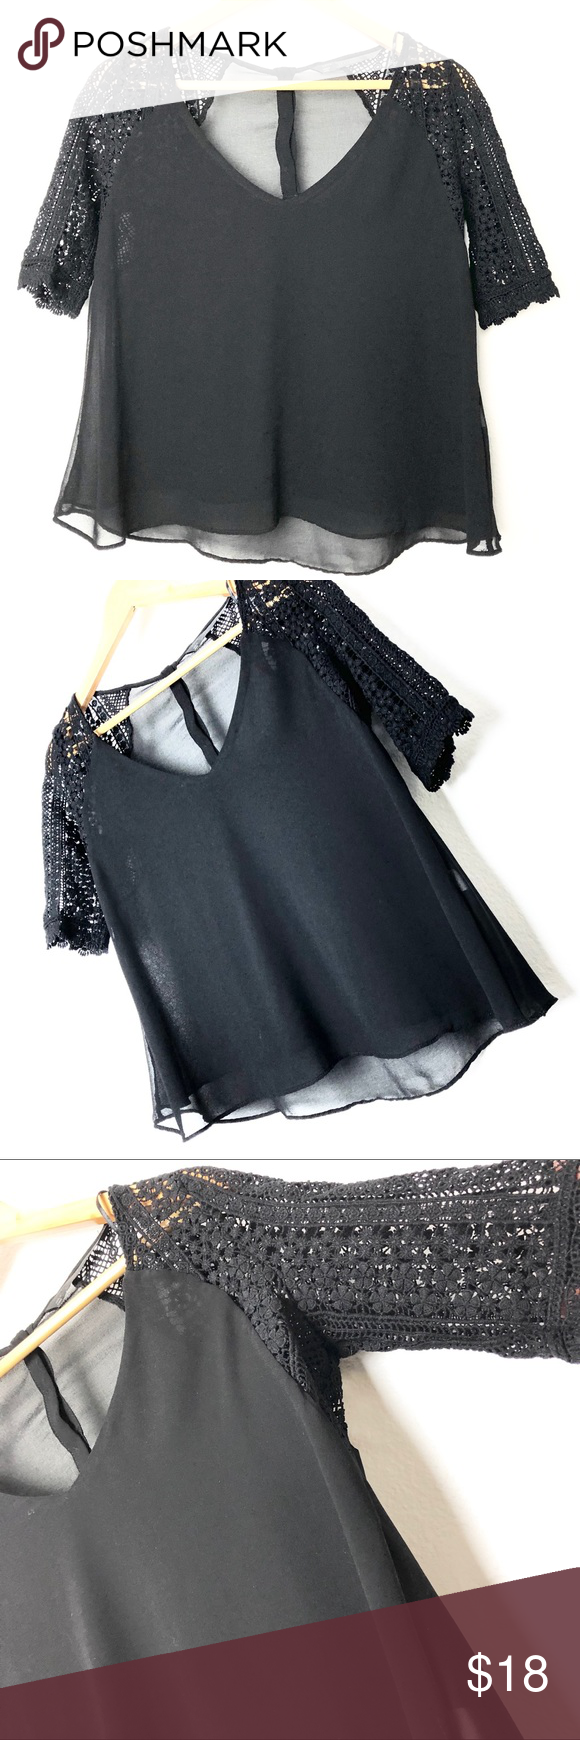 """Zara Trafaluc black lace sleeves blouse This is a Zara Trafaluc black lace sleeves blouse.  👁🗨 Size S  👁🗨 Bust approx 18 - 18 1/2""""..."""